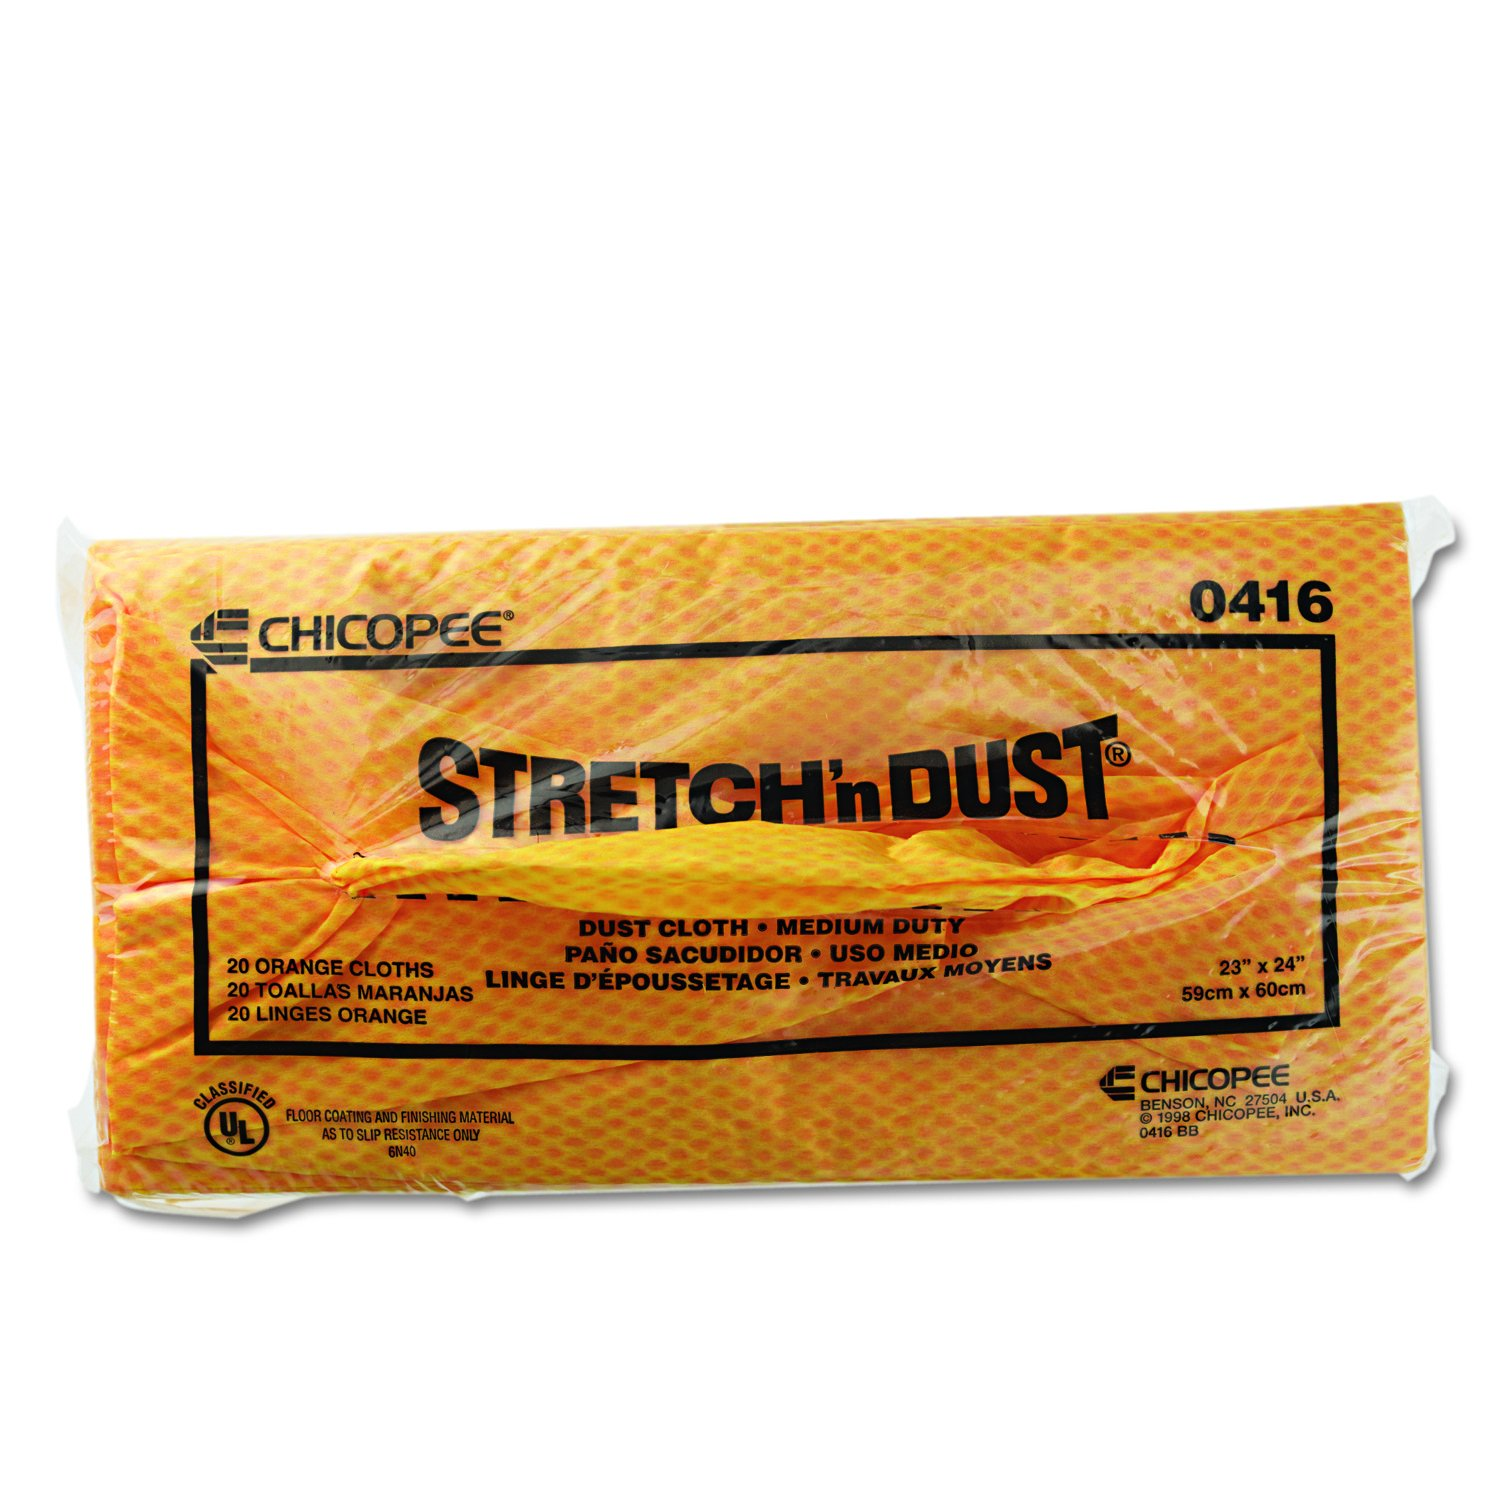 Amazon.com: Chicopee Stretchn Dust 0416 Medium Duty Dust Cloth, Yellow/Orange 24-Inch x 24-Inch (100 Count, 5 bags of 20): Industrial & Scientific